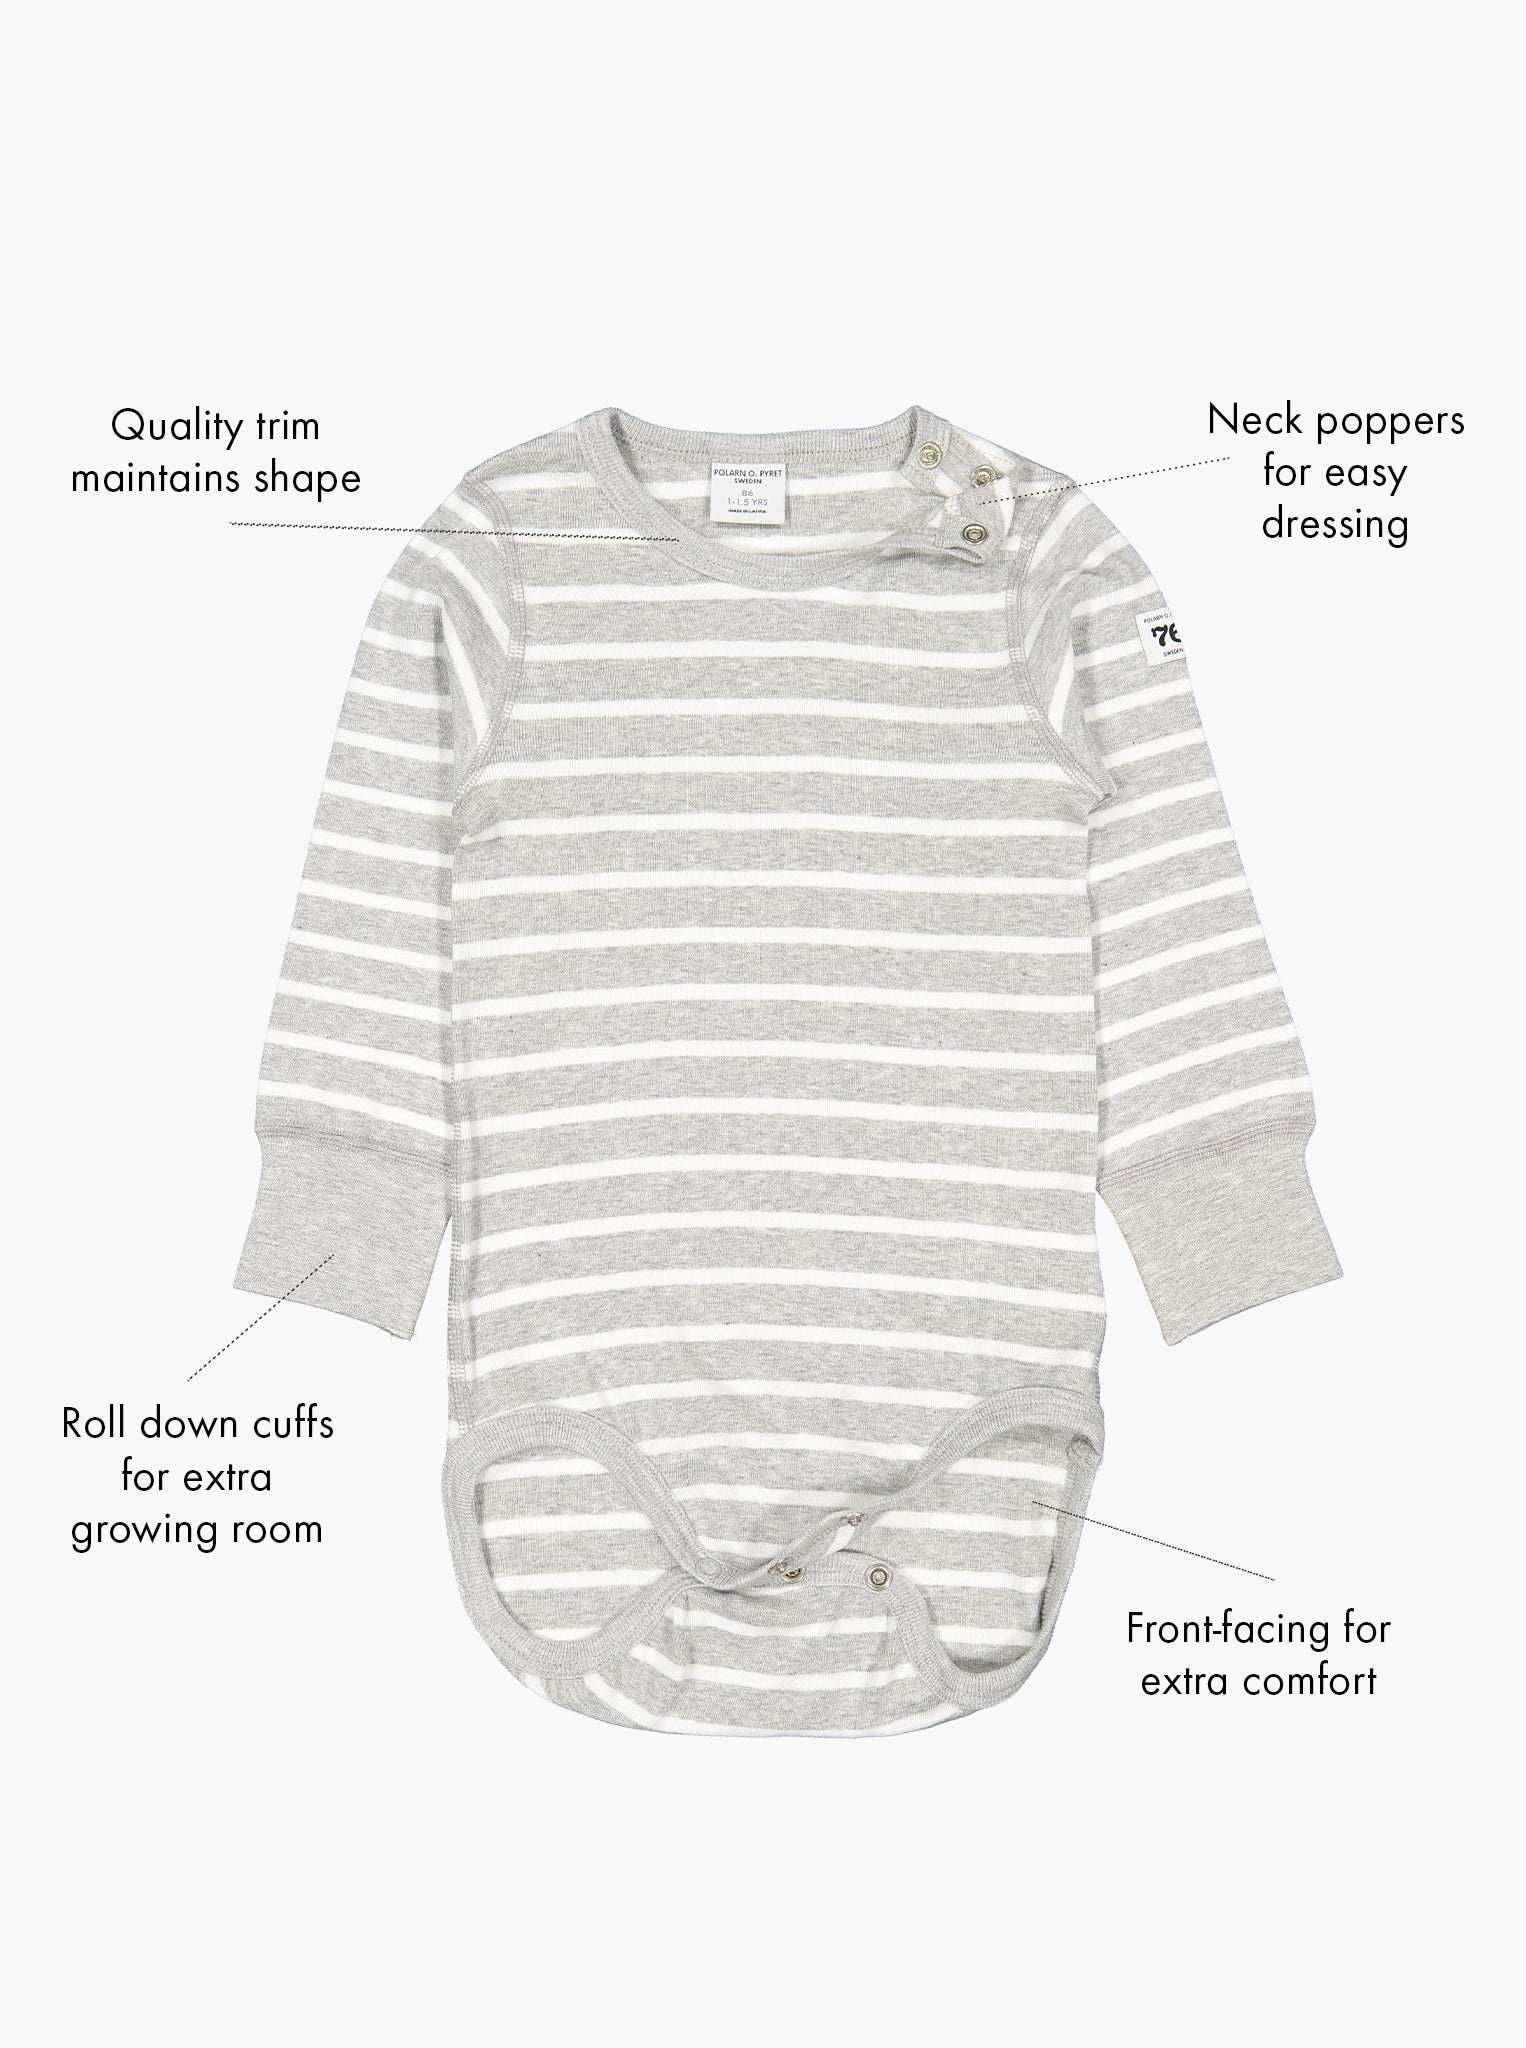 Babygrows for toddlers & babies in a classic grey and white stripe print, with text labels on the side showing its special features.